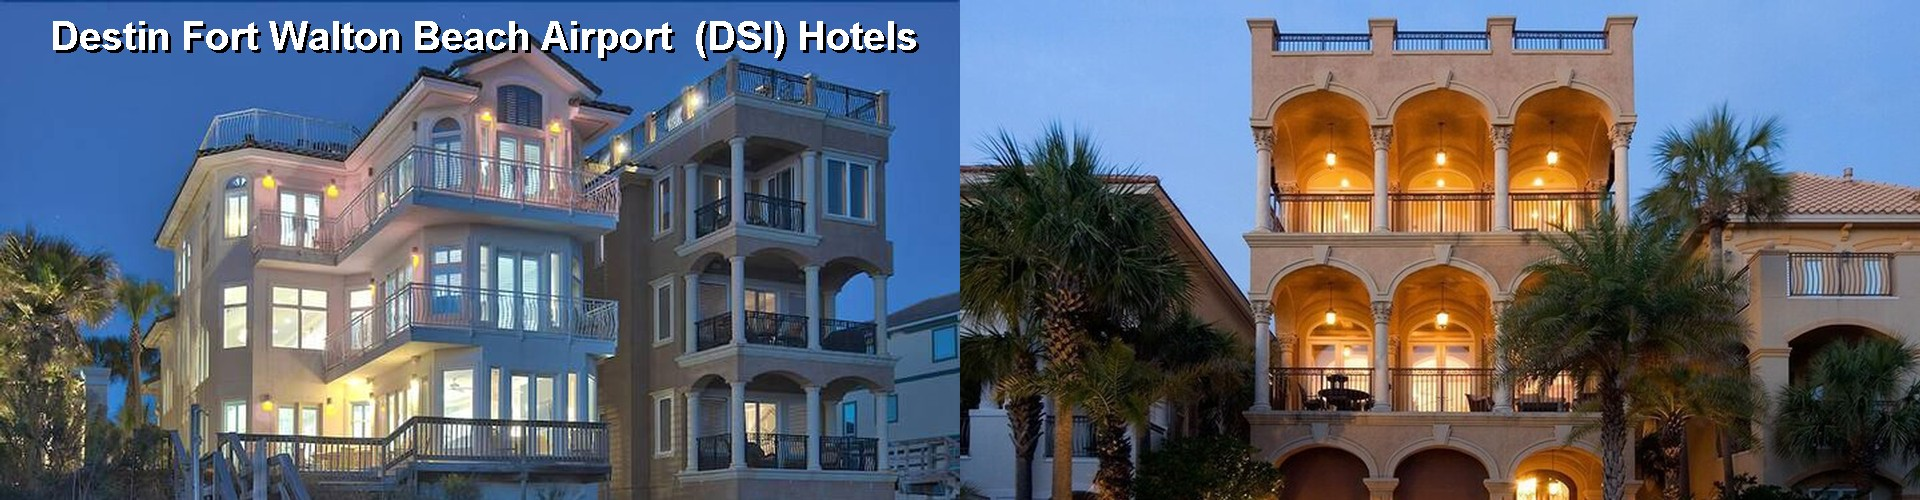 $75+ Hotels Near Destin Fort Walton Beach Airport (DSI) FL ✈